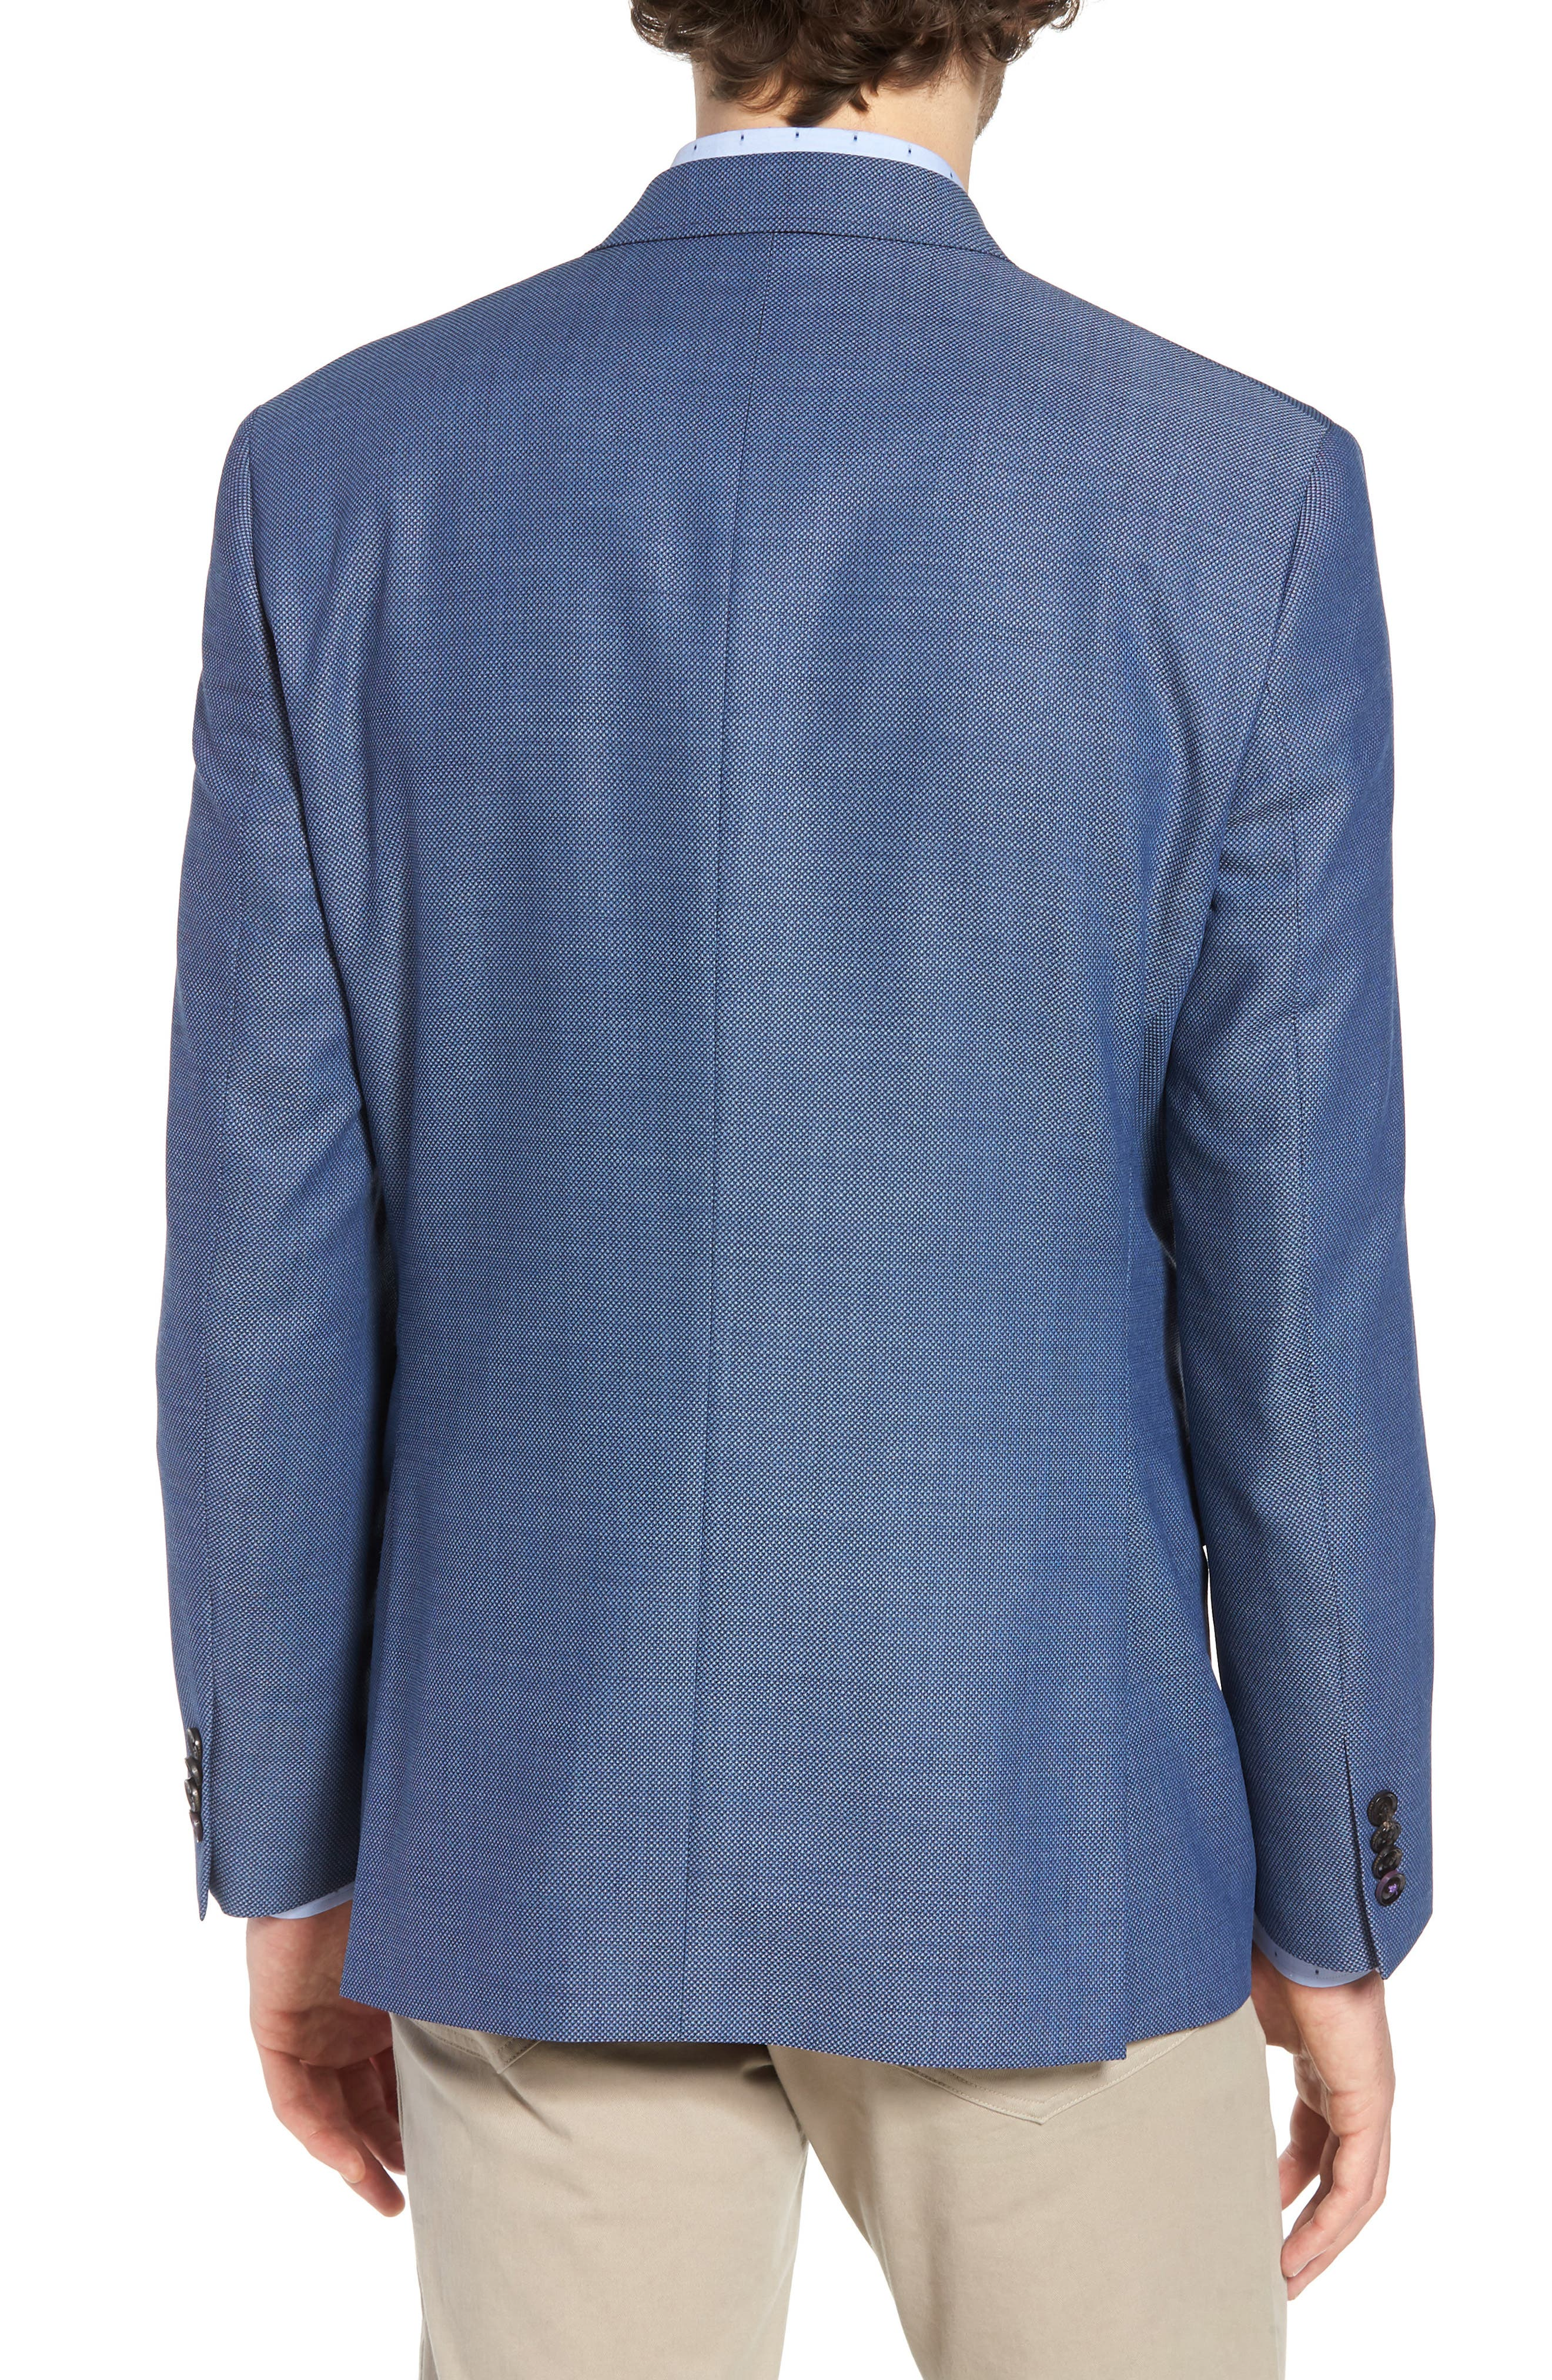 Jay Trim Fit Wool Blazer,                             Alternate thumbnail 2, color,                             400